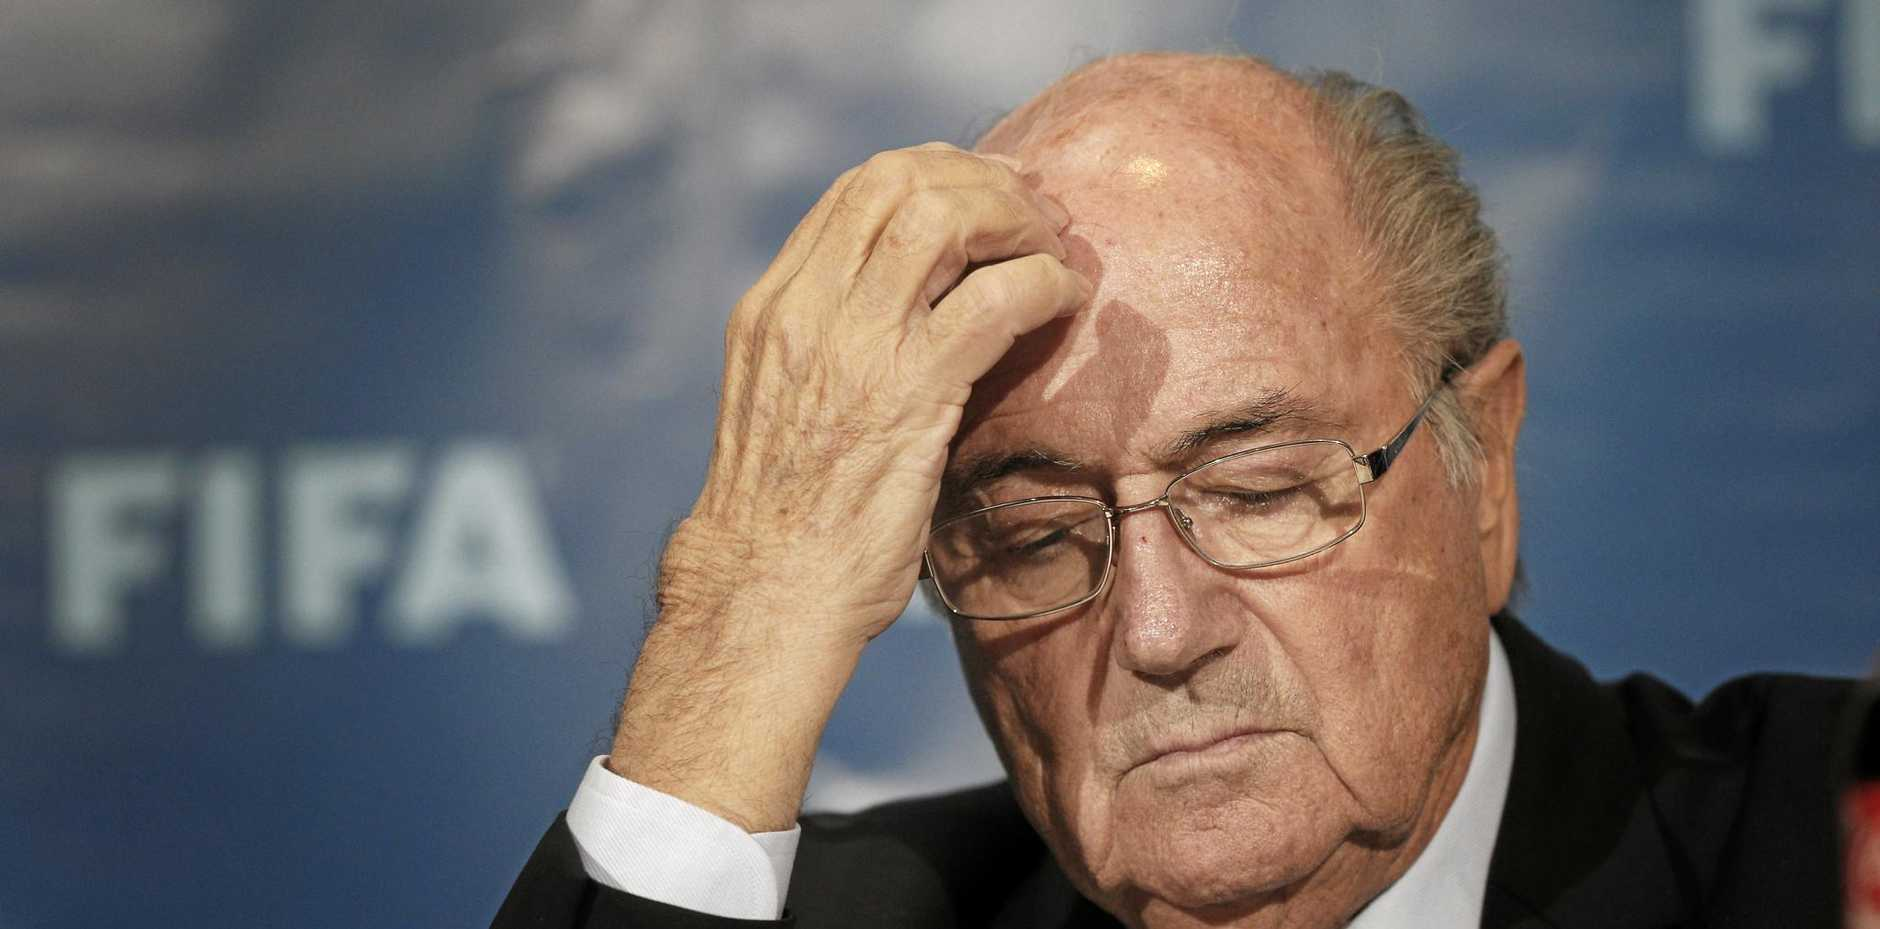 Former FIFA president Sepp Blatter at a news conference in Morocco.